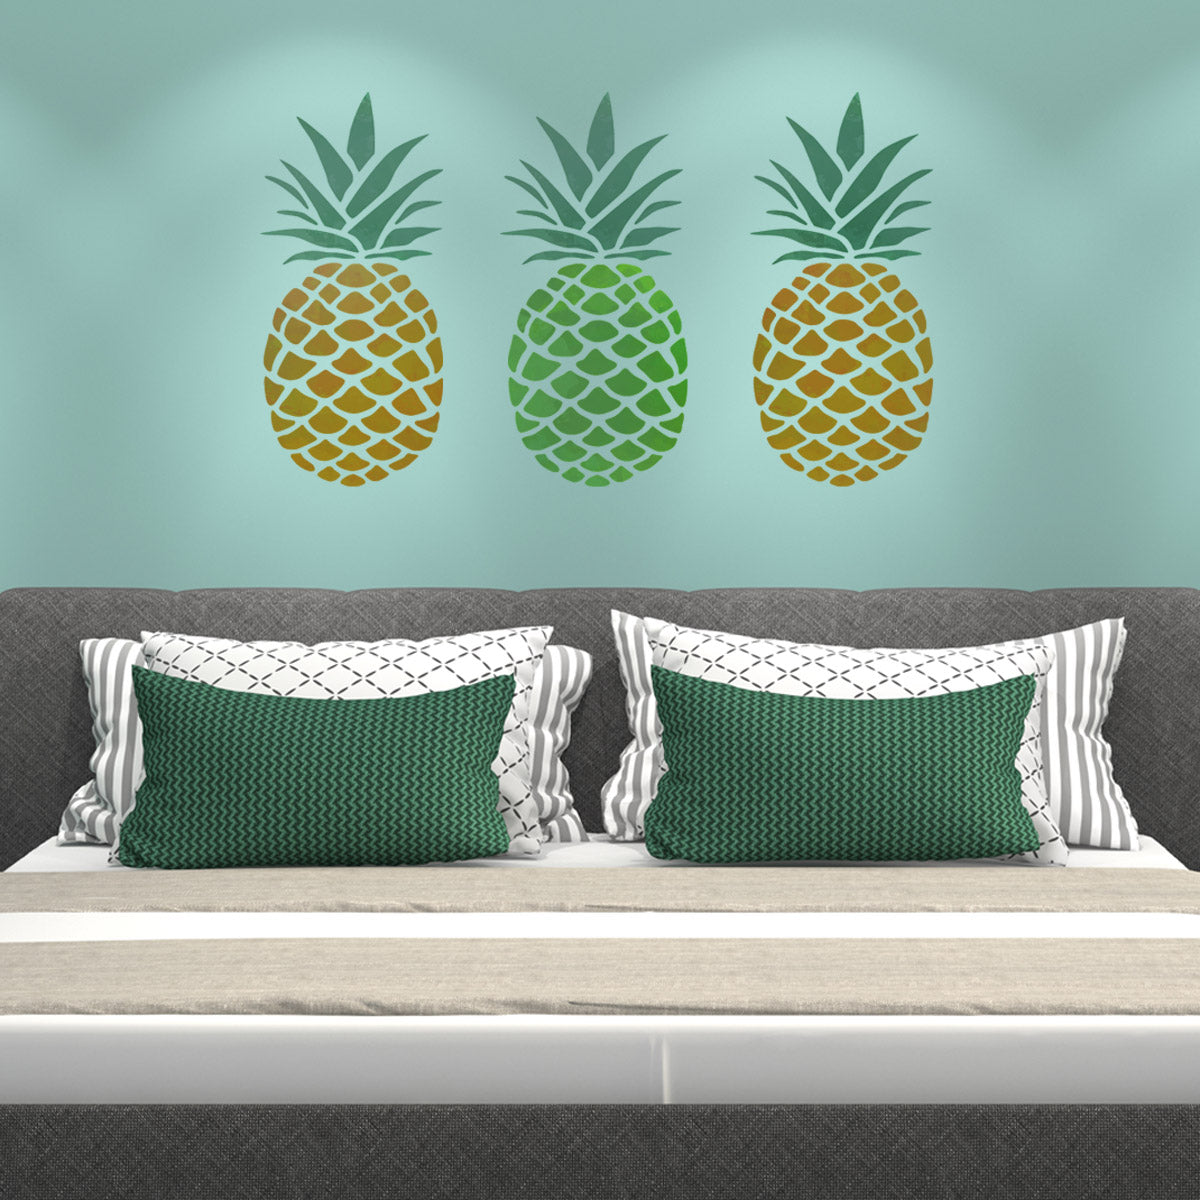 CraftStar Large Pineapple Stencil on bedroom wall